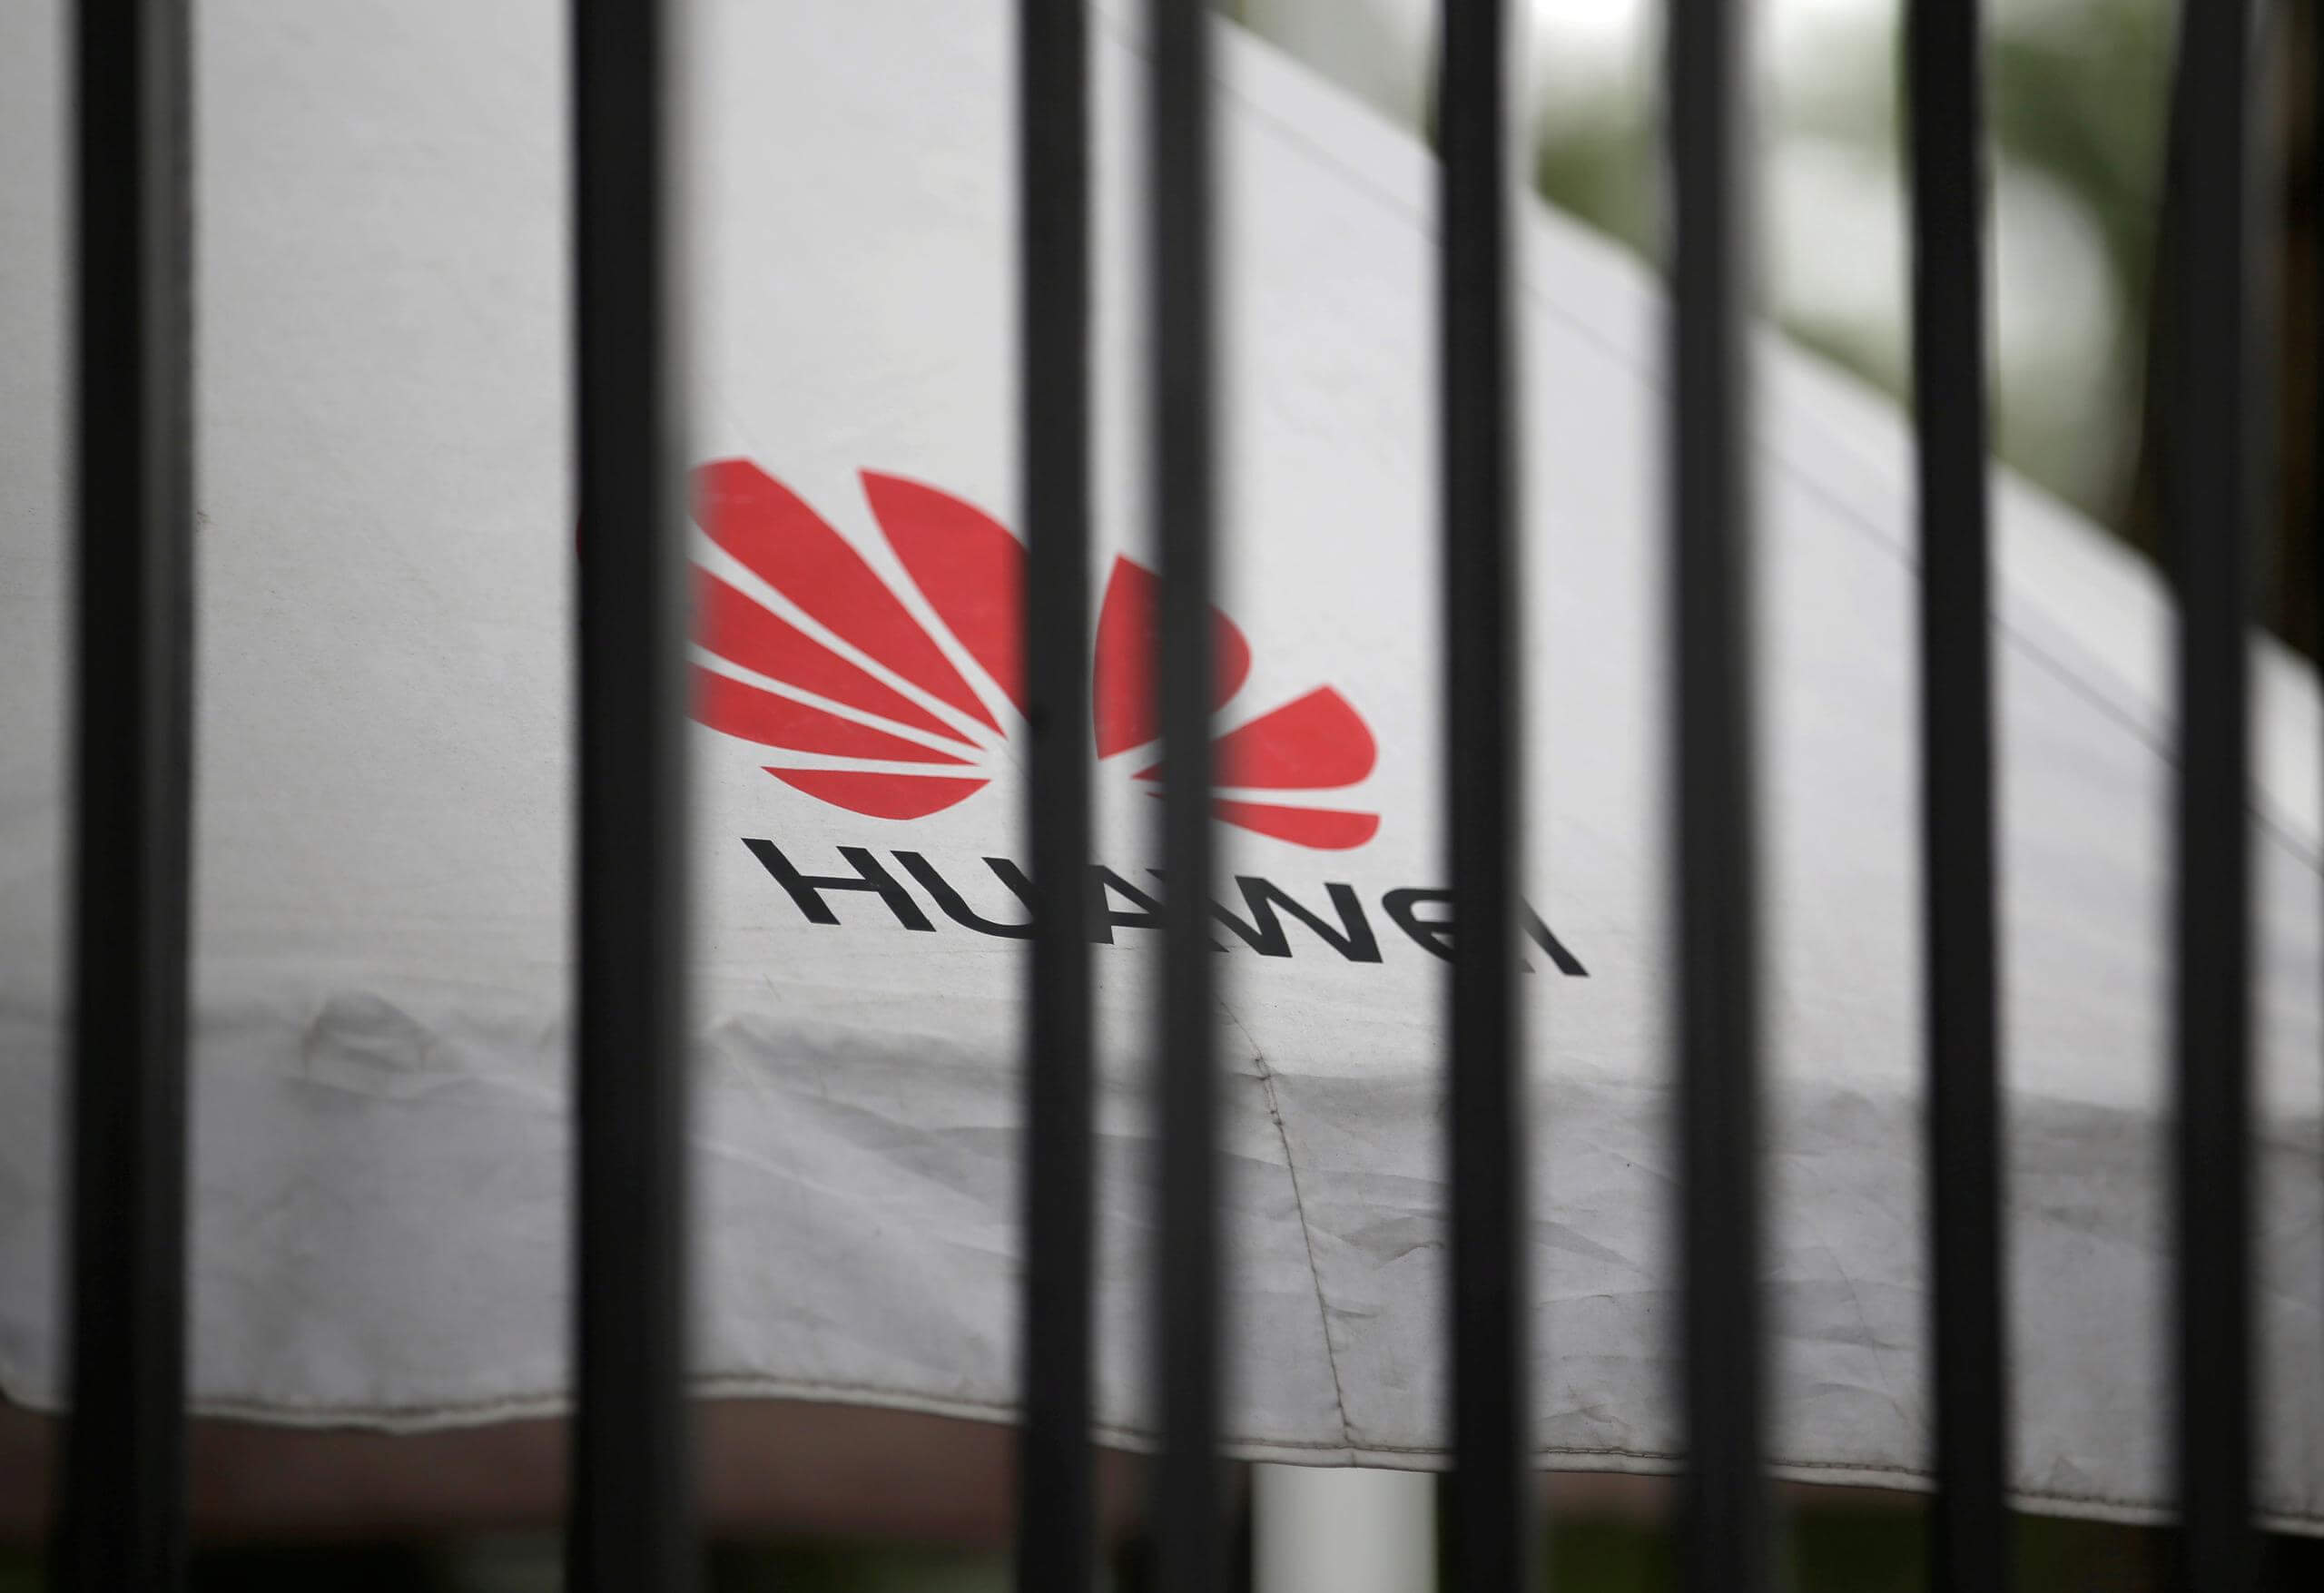 China may be considering restrictions against US chipmakers amid renewed Huawei ban